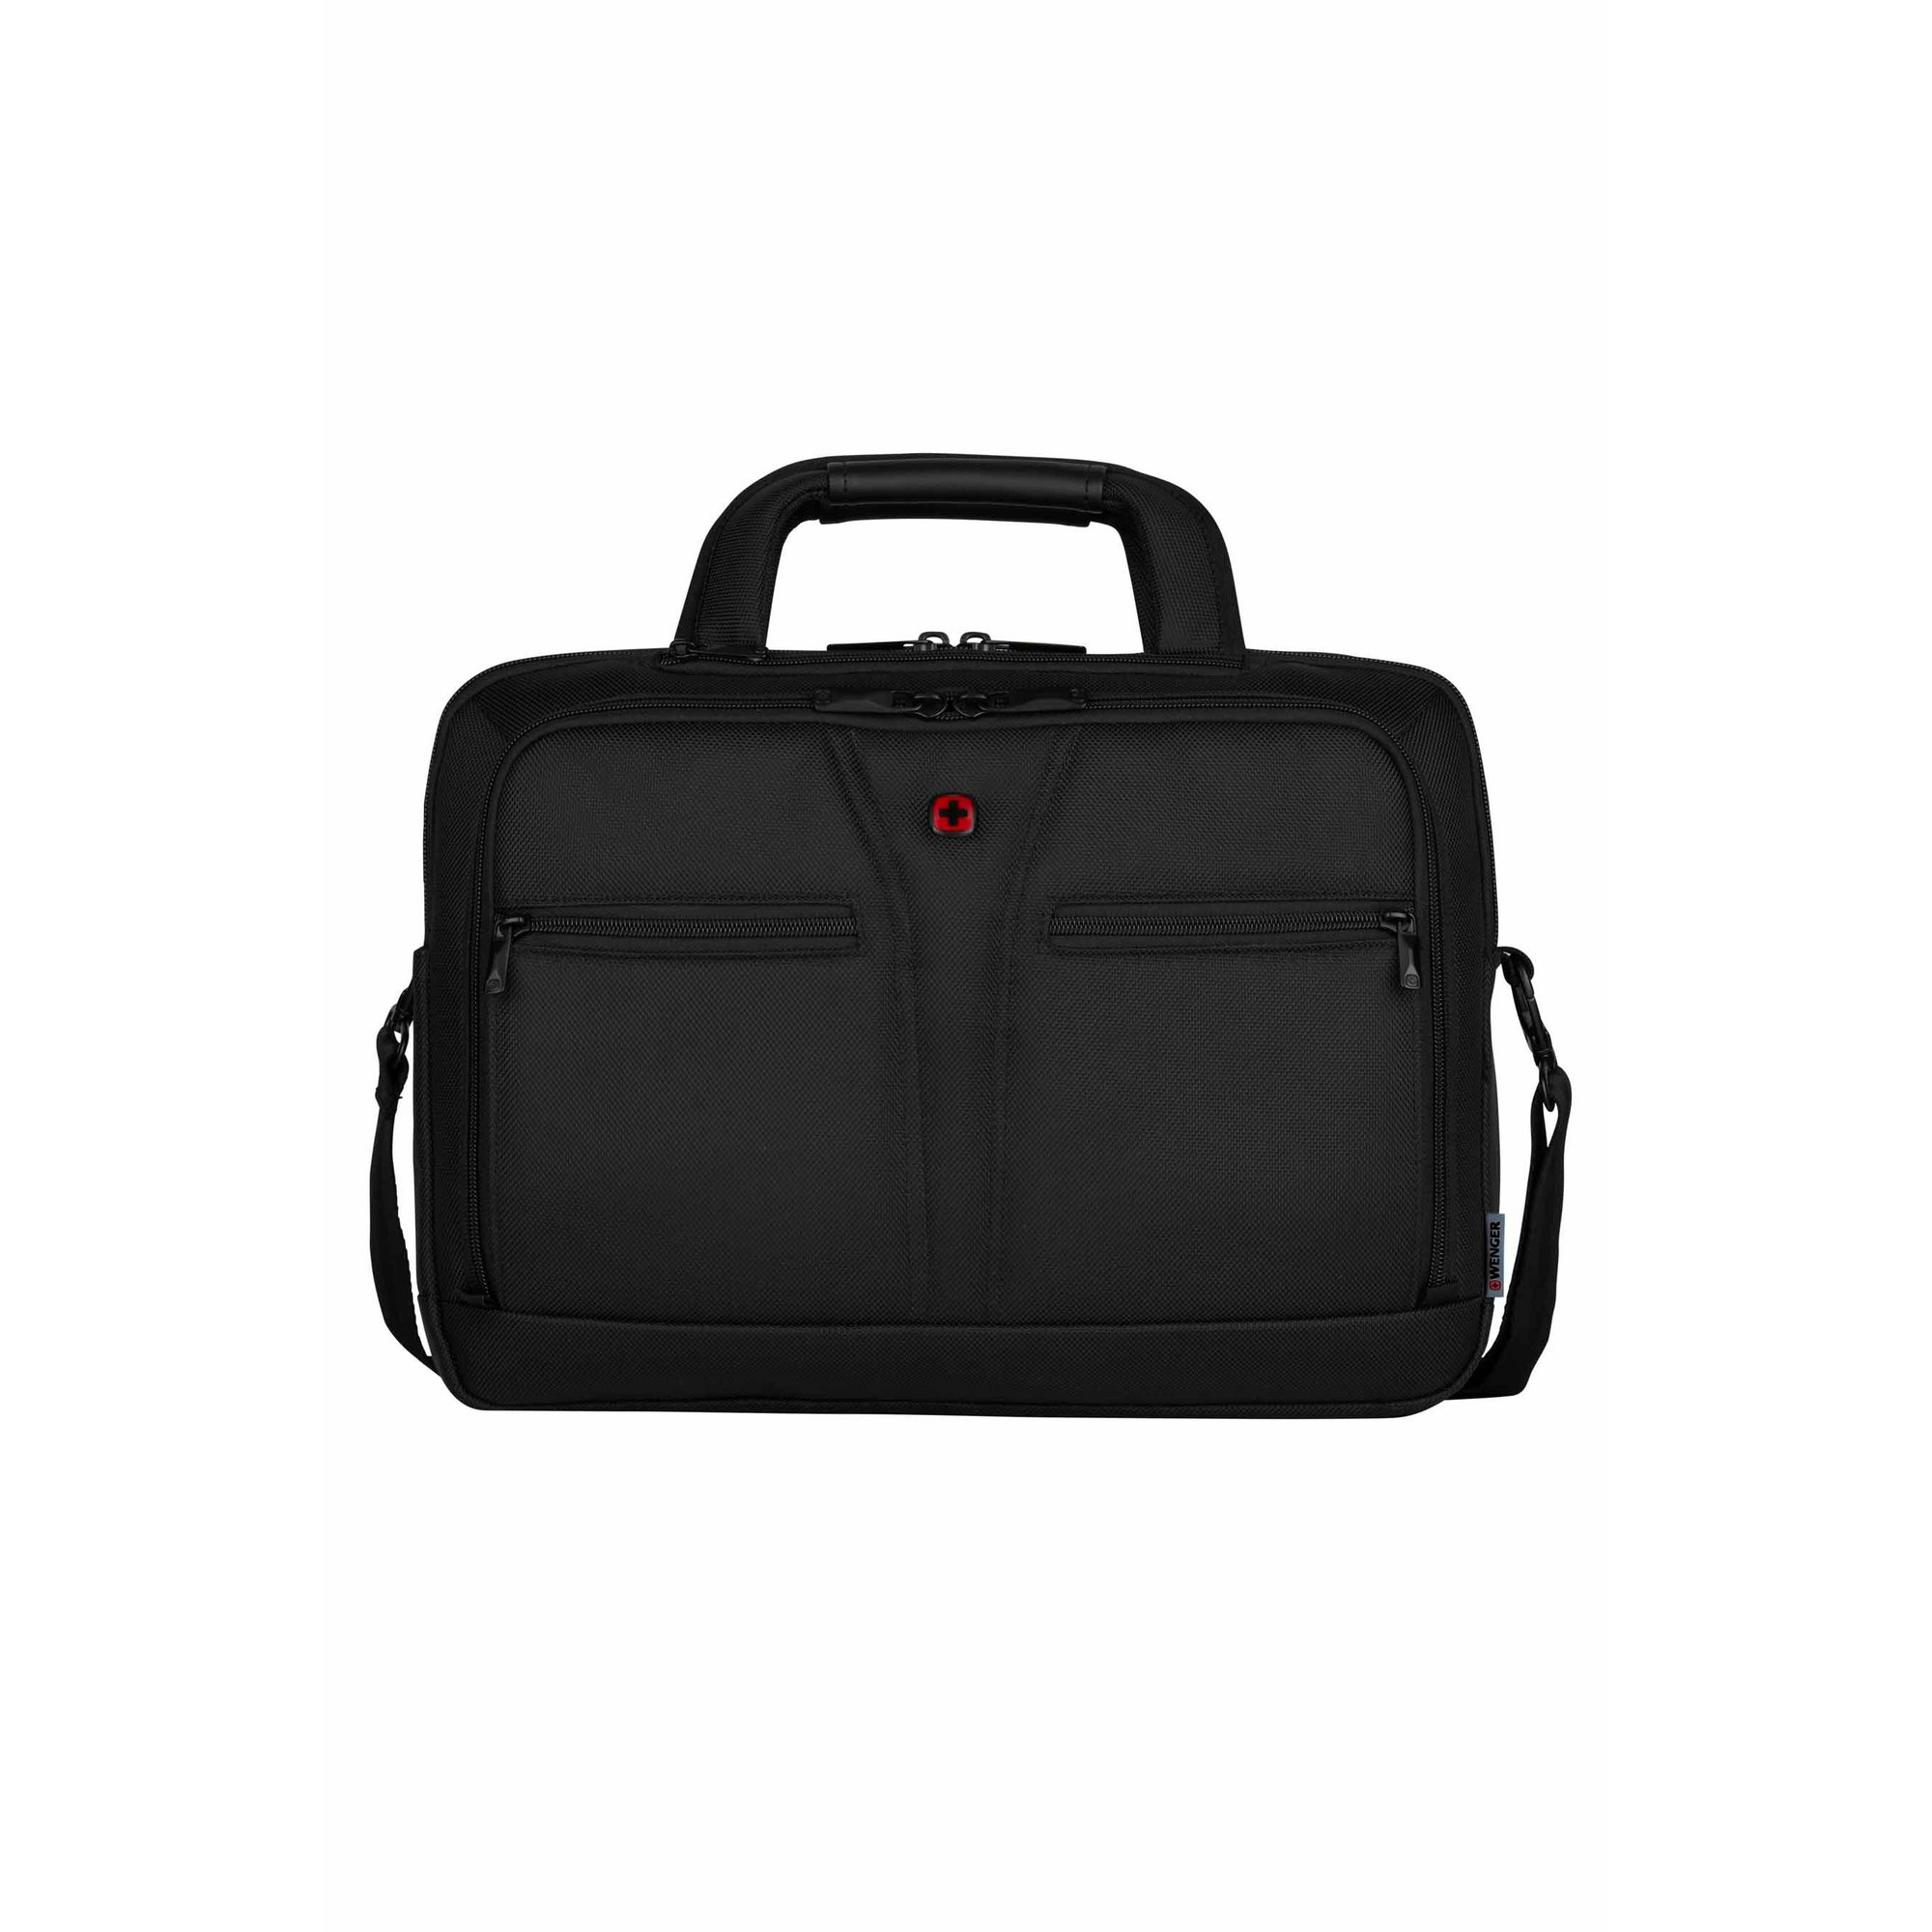 Image of Wenger BC-Pro Laptop Bag